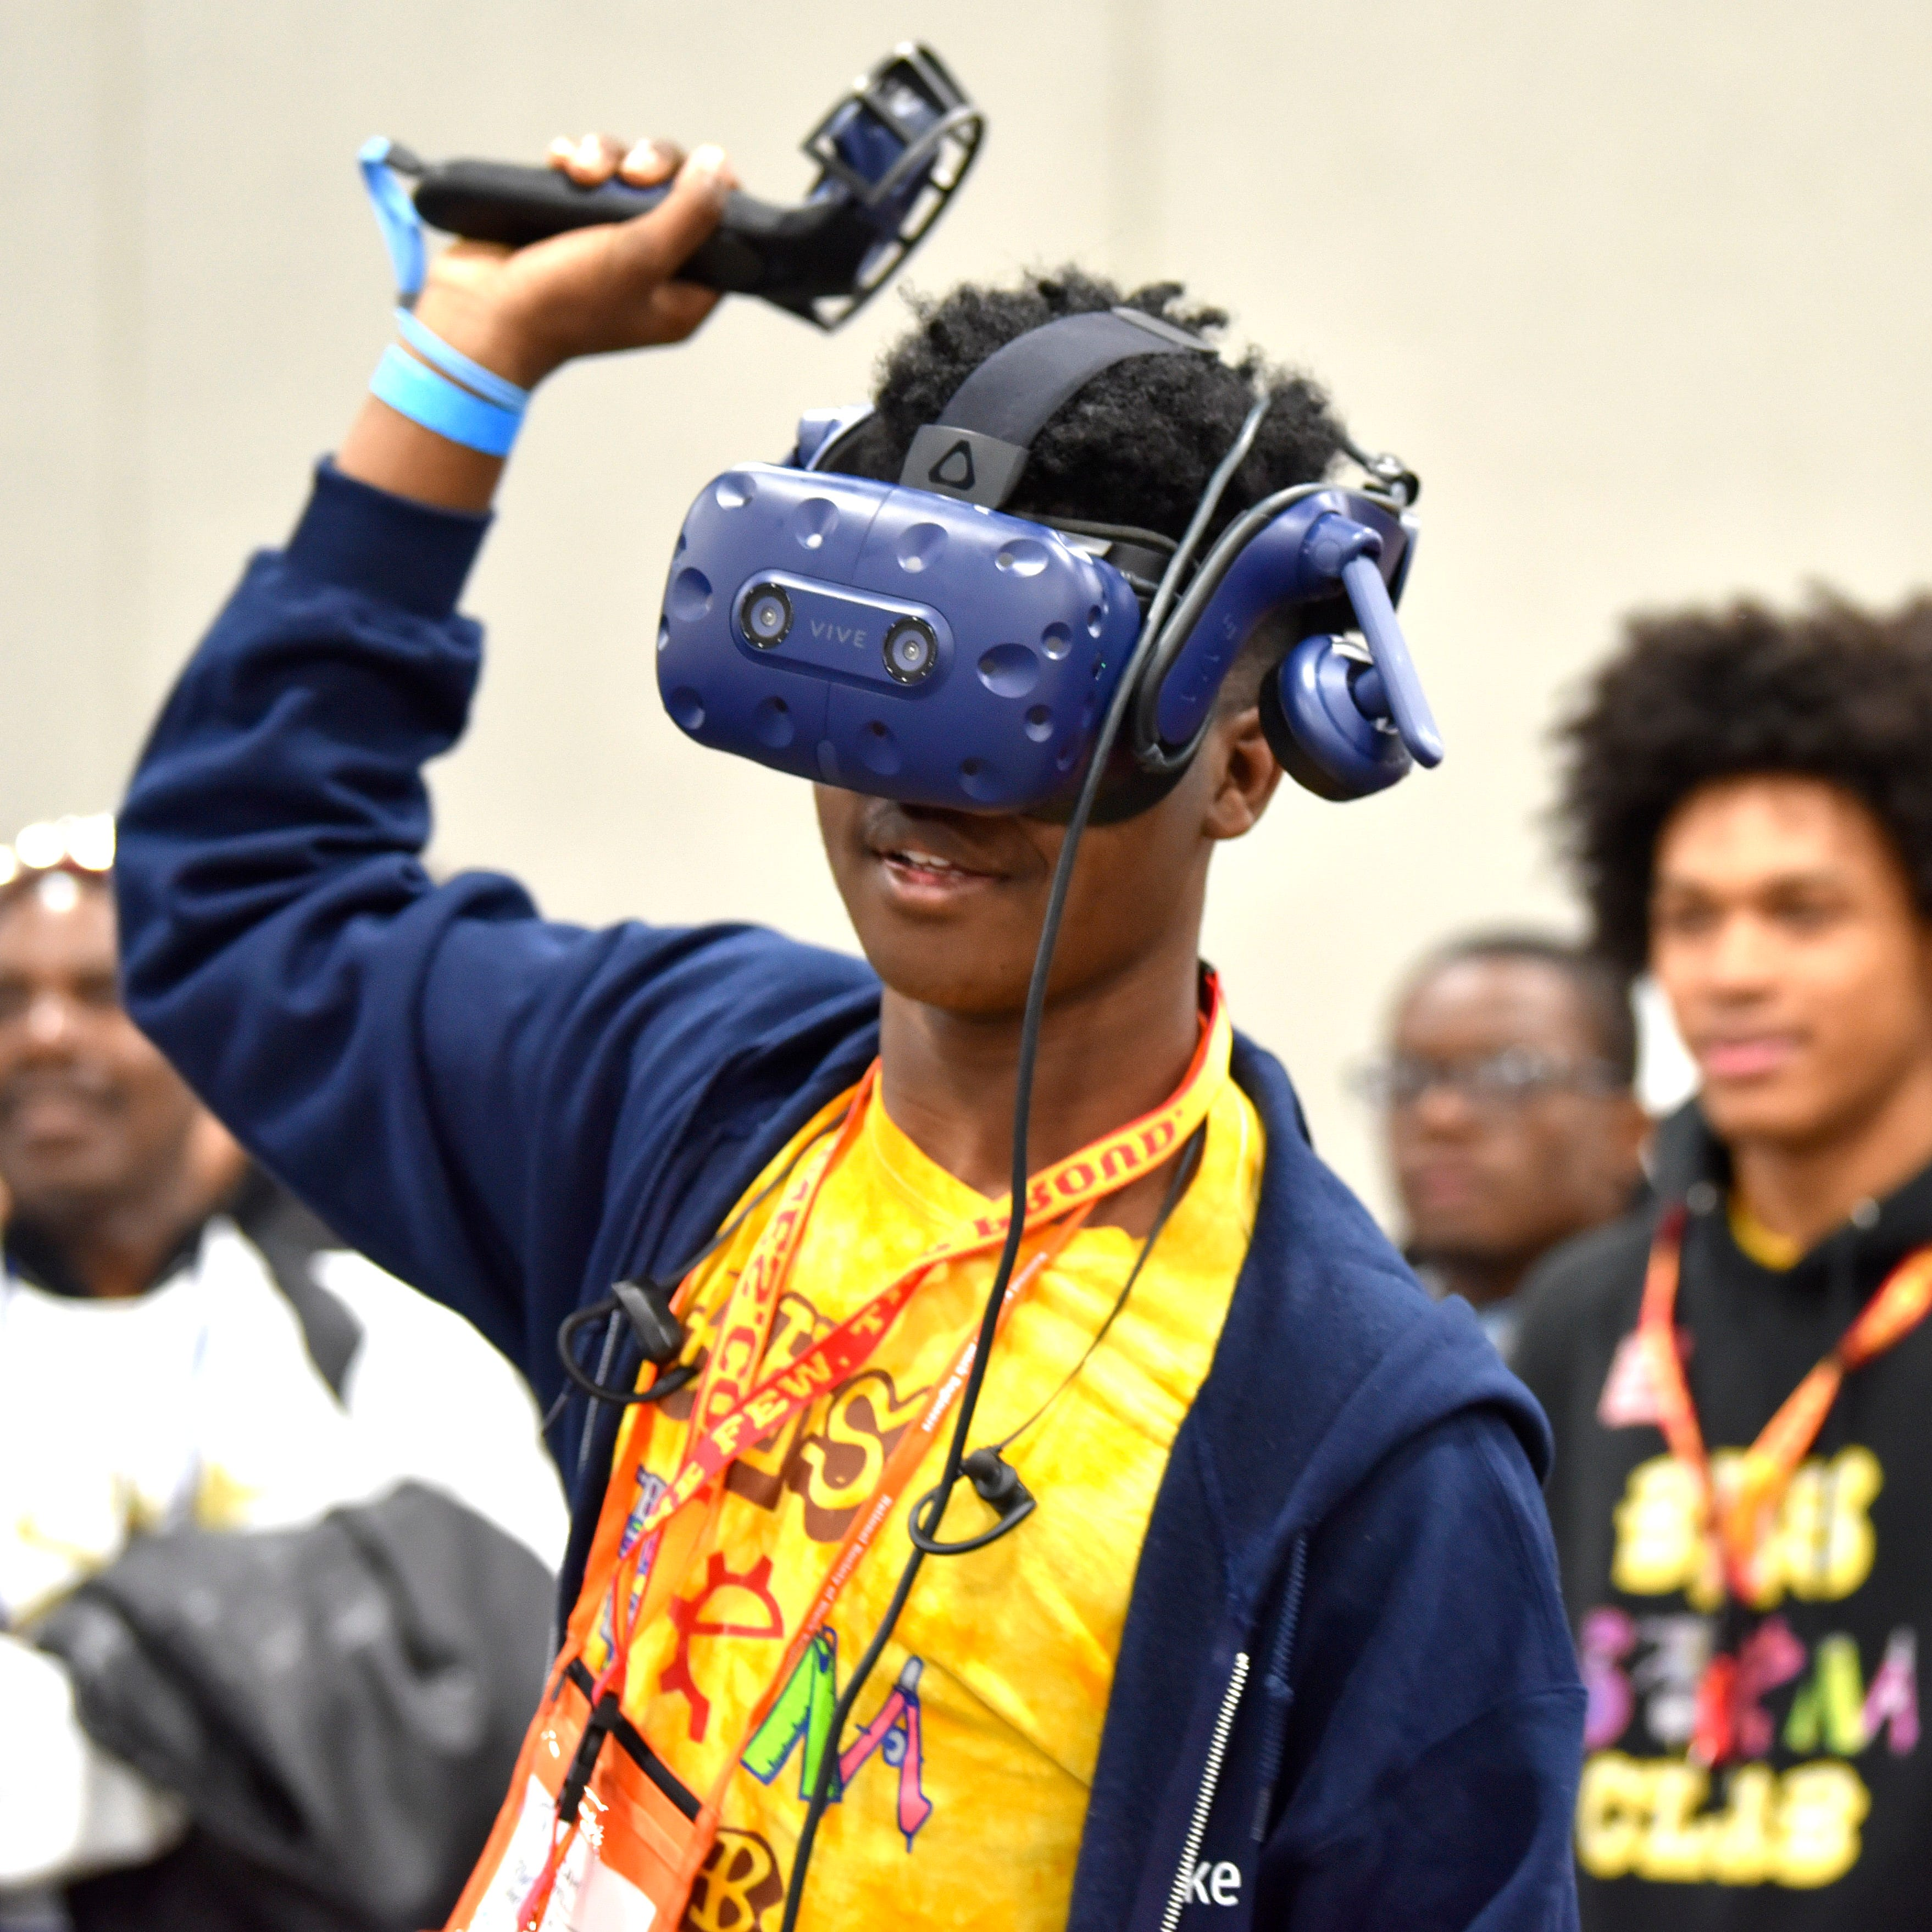 Students envision new careers at STEAMfest in Detroit